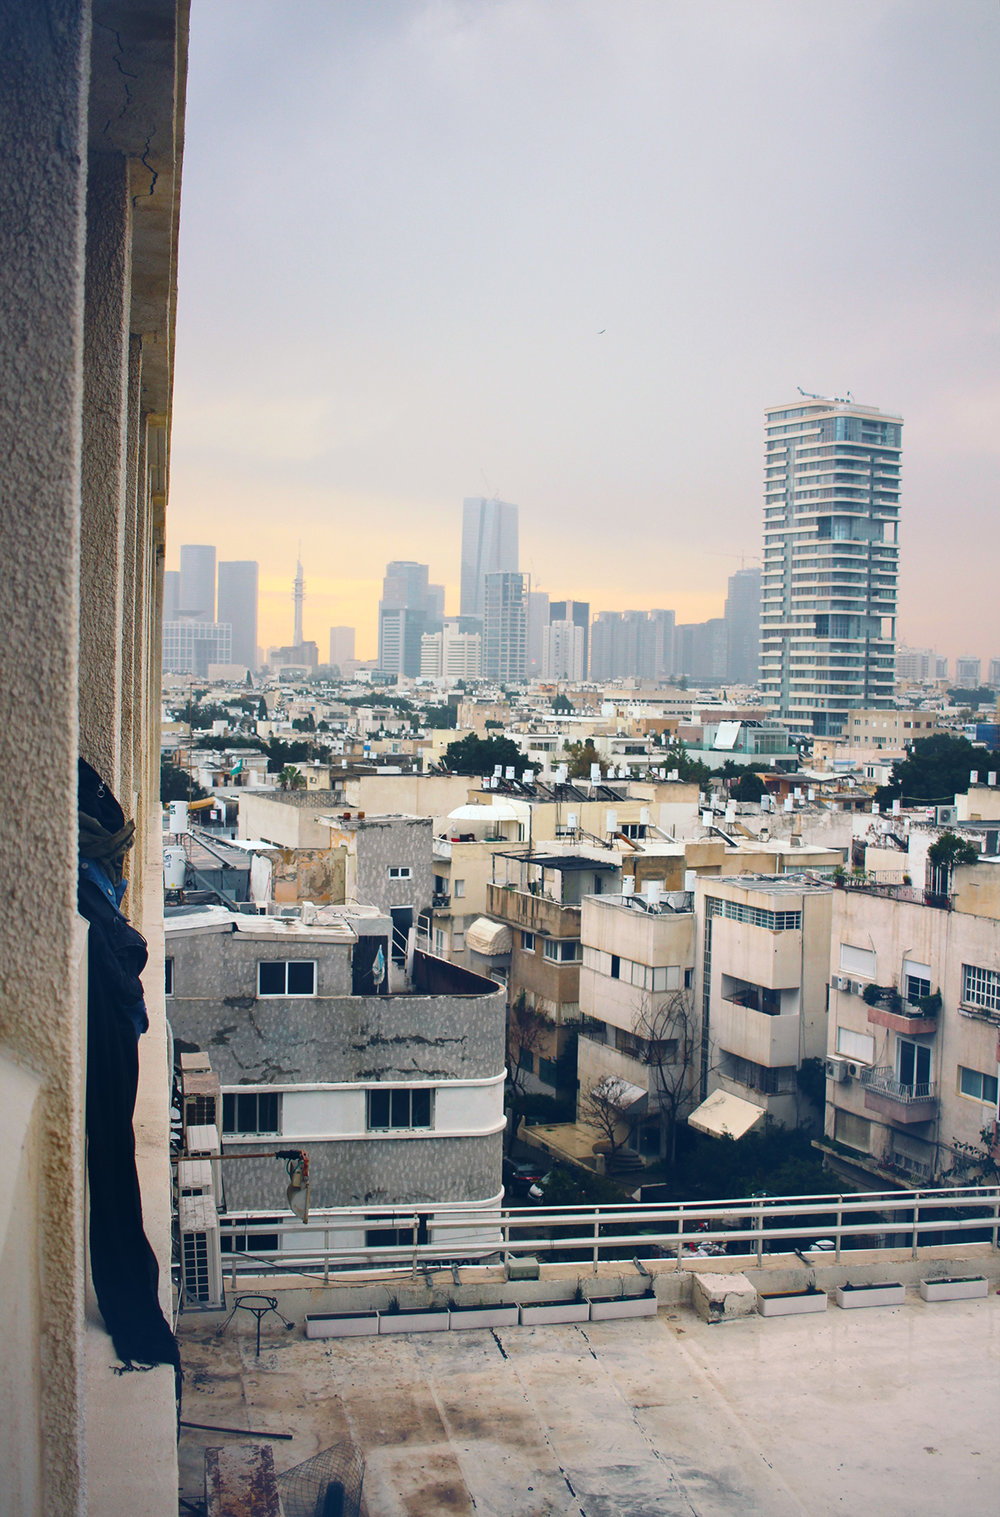 View across Tel-Aviv, 2016. View across Tel-Aviv, taken from the fifth floor of the Deborah Hotel on Ben Yehuda Street. Travel photography by Geena Matuson @geenamatuson #thegirlmirage.